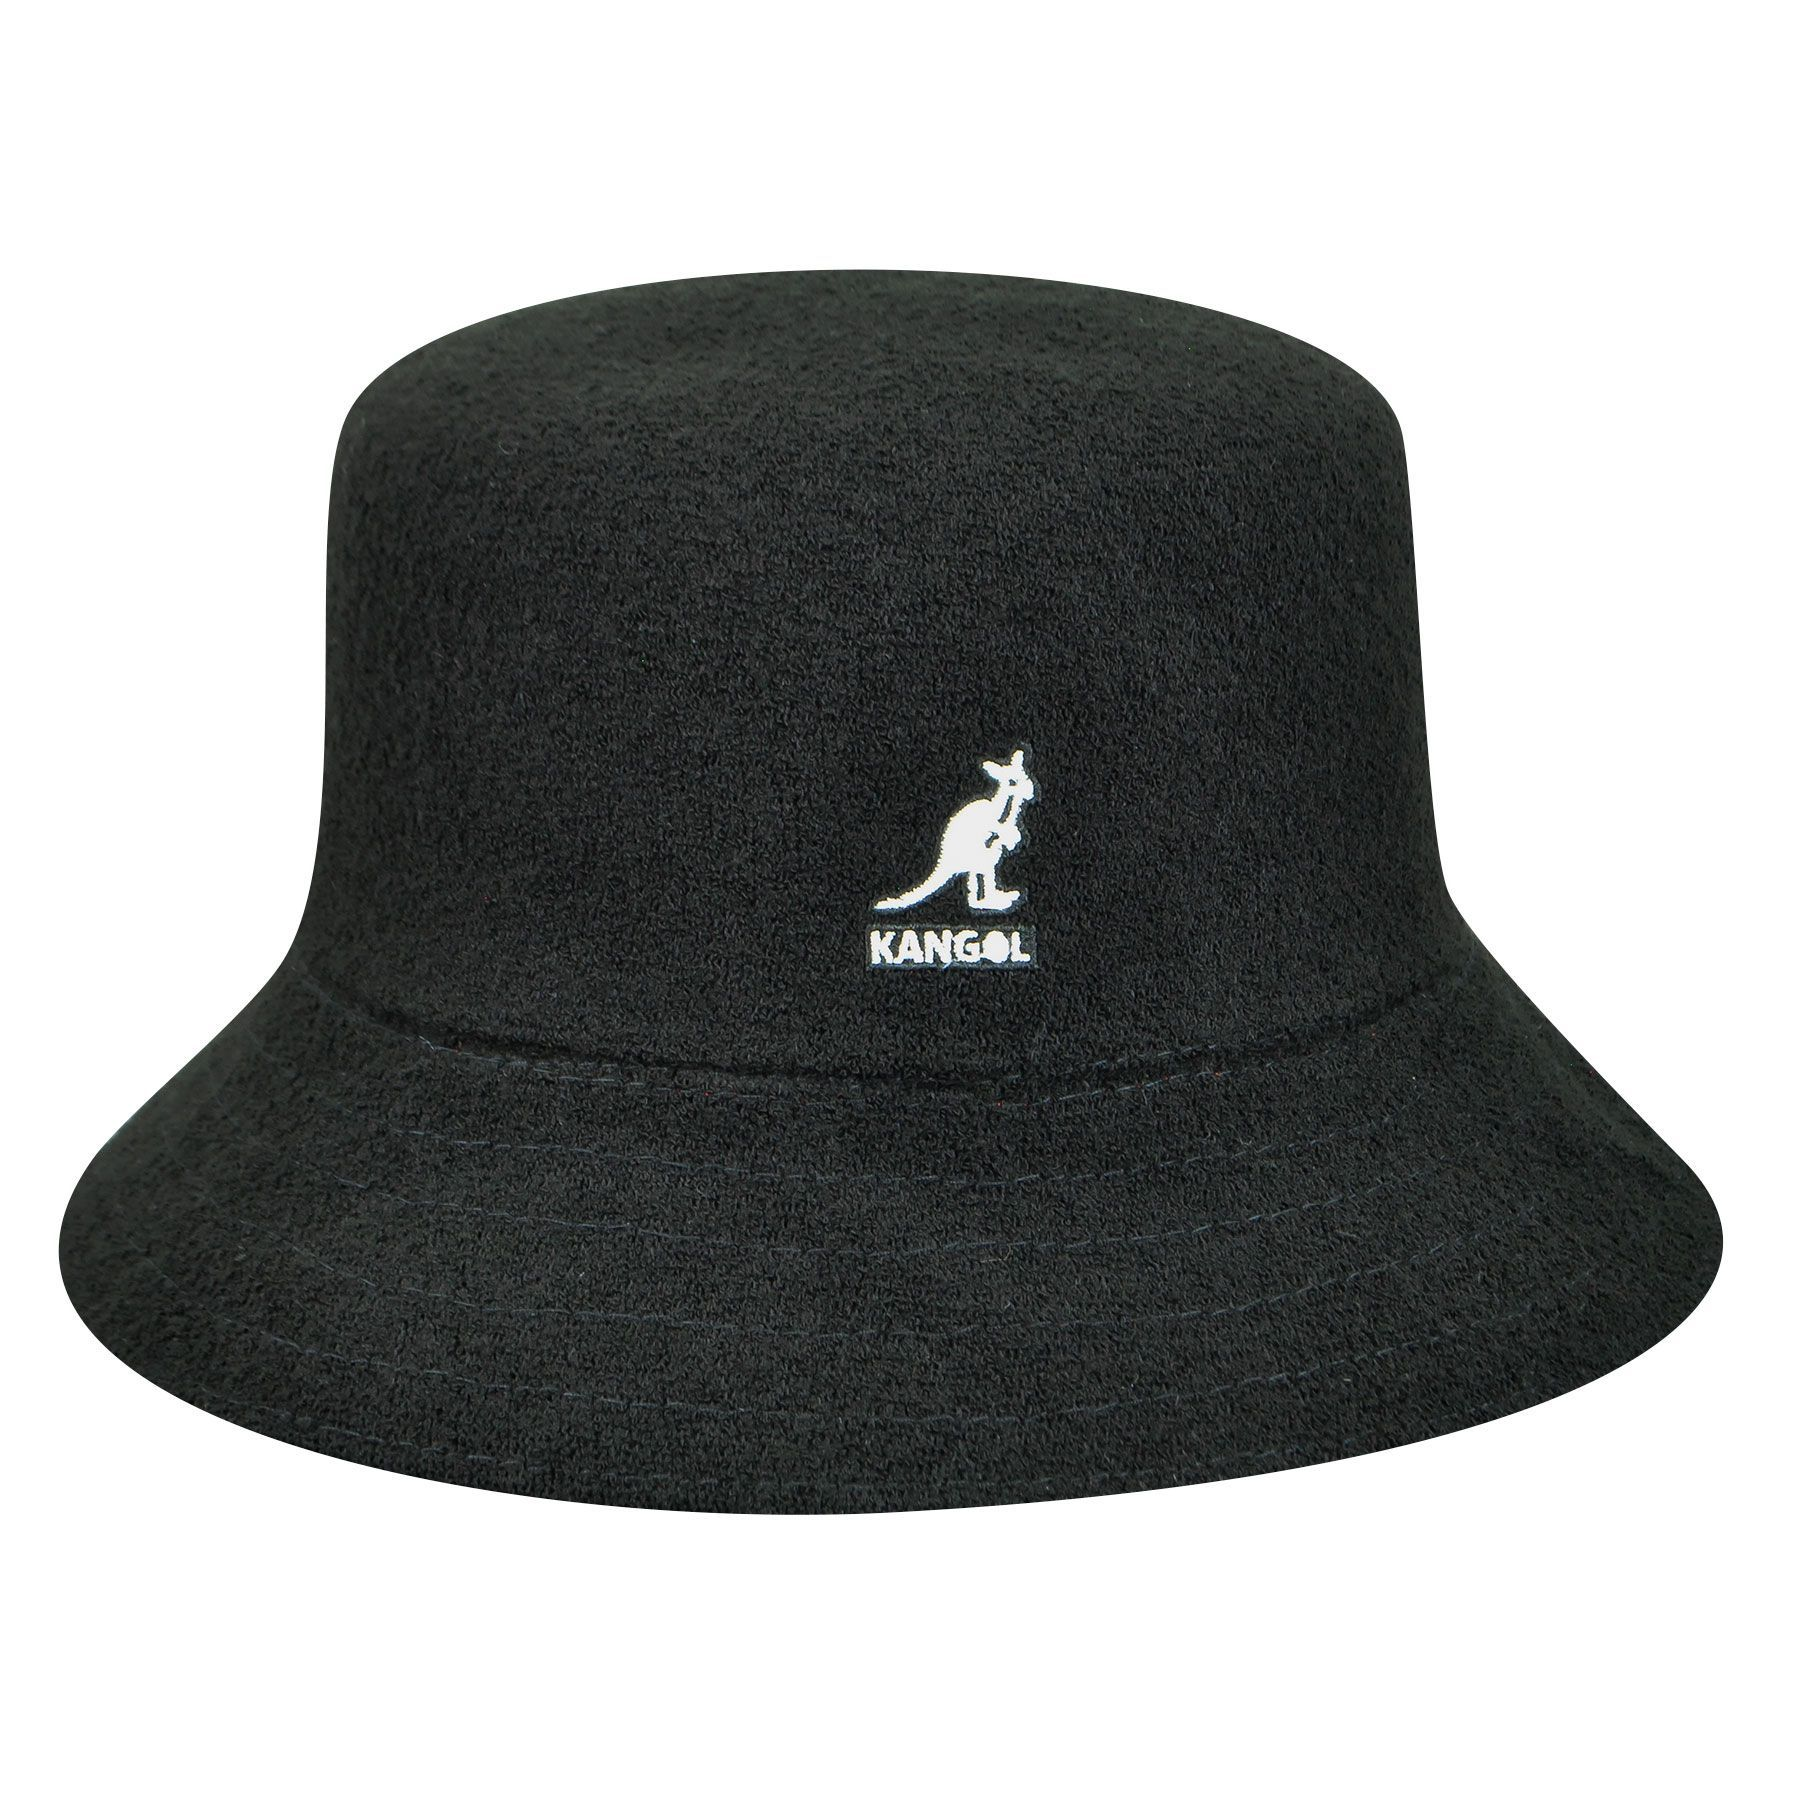 """<p><strong data-redactor-tag=""""strong"""">Shop: </strong><span class=""""redactor-invisible-space"""" data-verified=""""redactor"""" data-redactor-tag=""""span"""" data-redactor-class=""""redactor-invisible-space""""></span>Kangol Bermuda Bucket Hat, $60; <a href=""""https://www.kangolstore.com/headwear/shape/buckets/bermuda-bucket-hat.html"""">kangolstore.com</a></p>"""